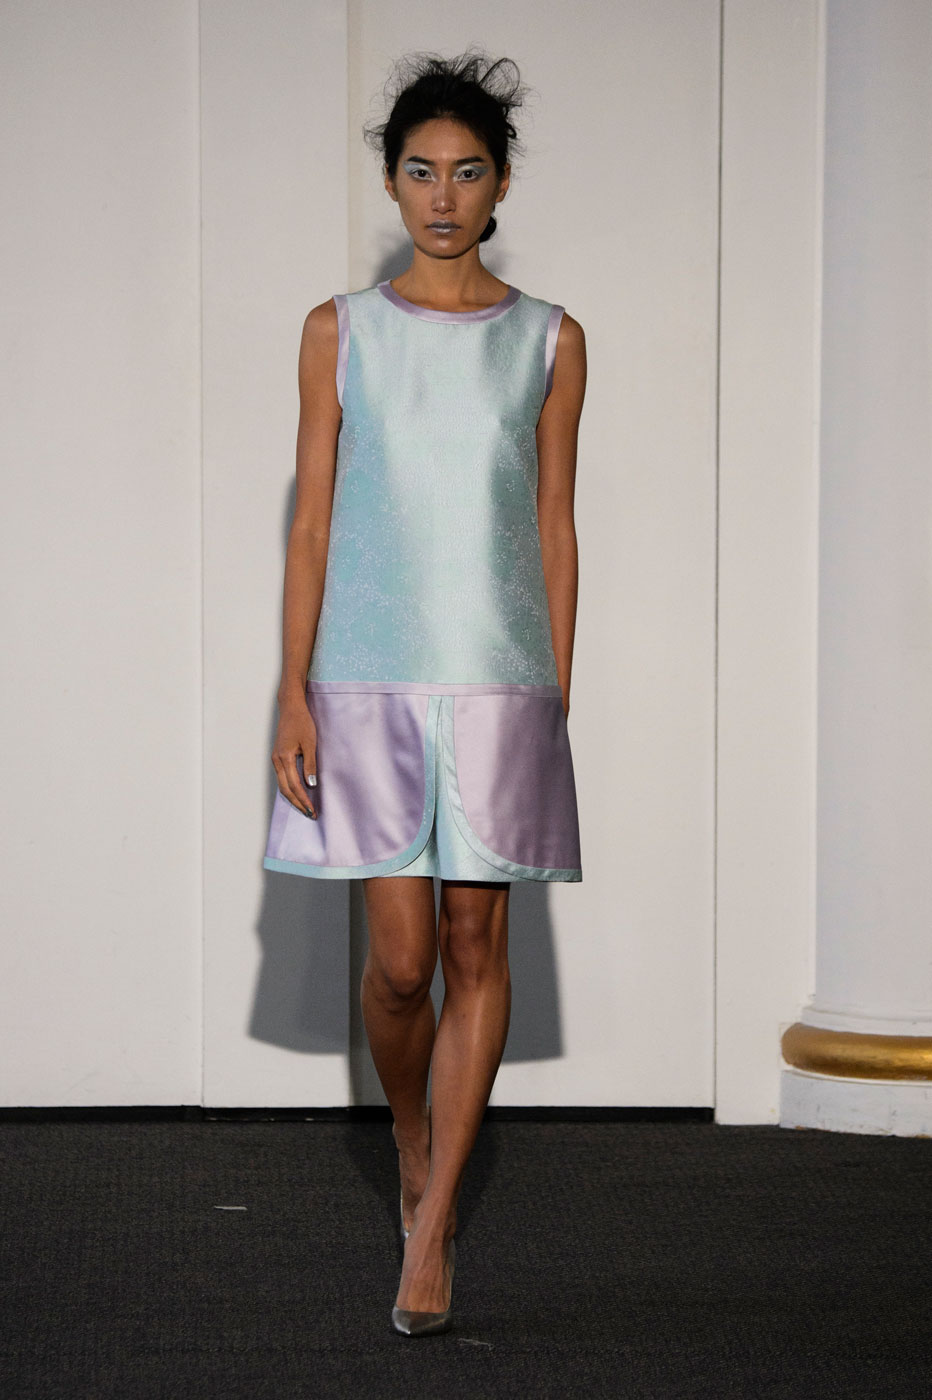 Busardi-fashion-runway-show-haute-couture-paris-spring-2015-the-impression-08